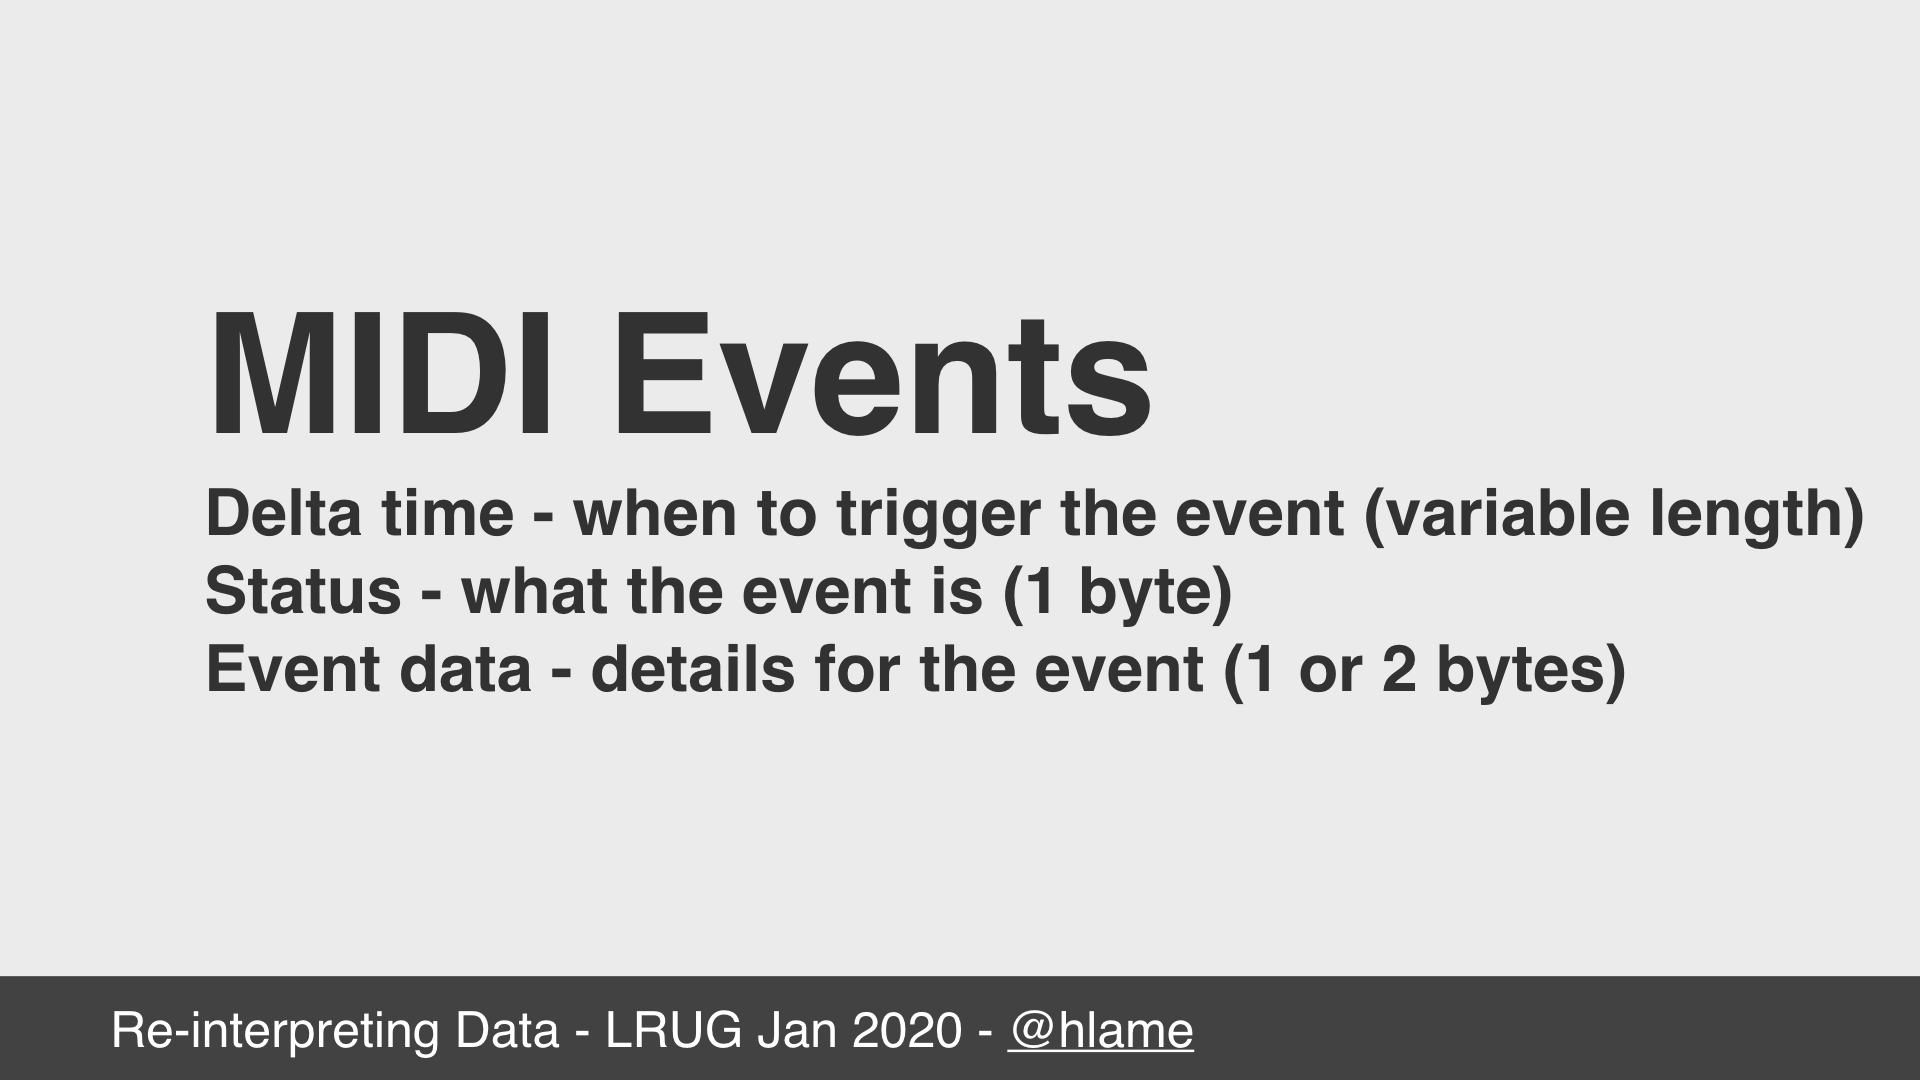 text: MIDI Events; Delta time - when to trigger the event (variable length); Status - what the event is (1 byte); Event data - details for the event (1 or 2 bytes)